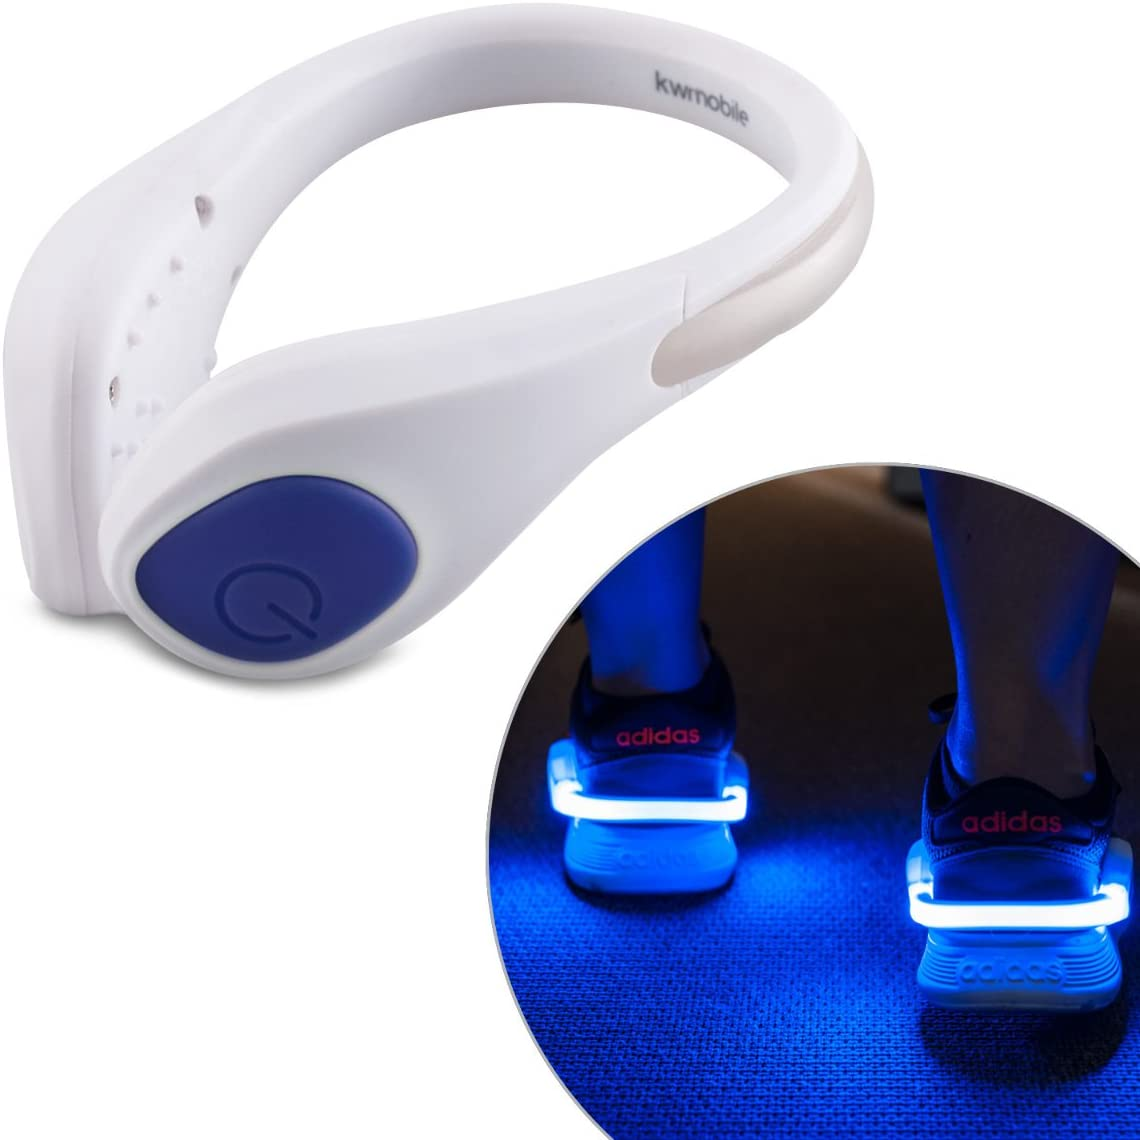 Set of 2 Flashing Shoe Clips in Multiple Colors Reflective Safety Night Athletic Gear for Runners Joggers Bikers kwmobile LED Light Shoe Clip